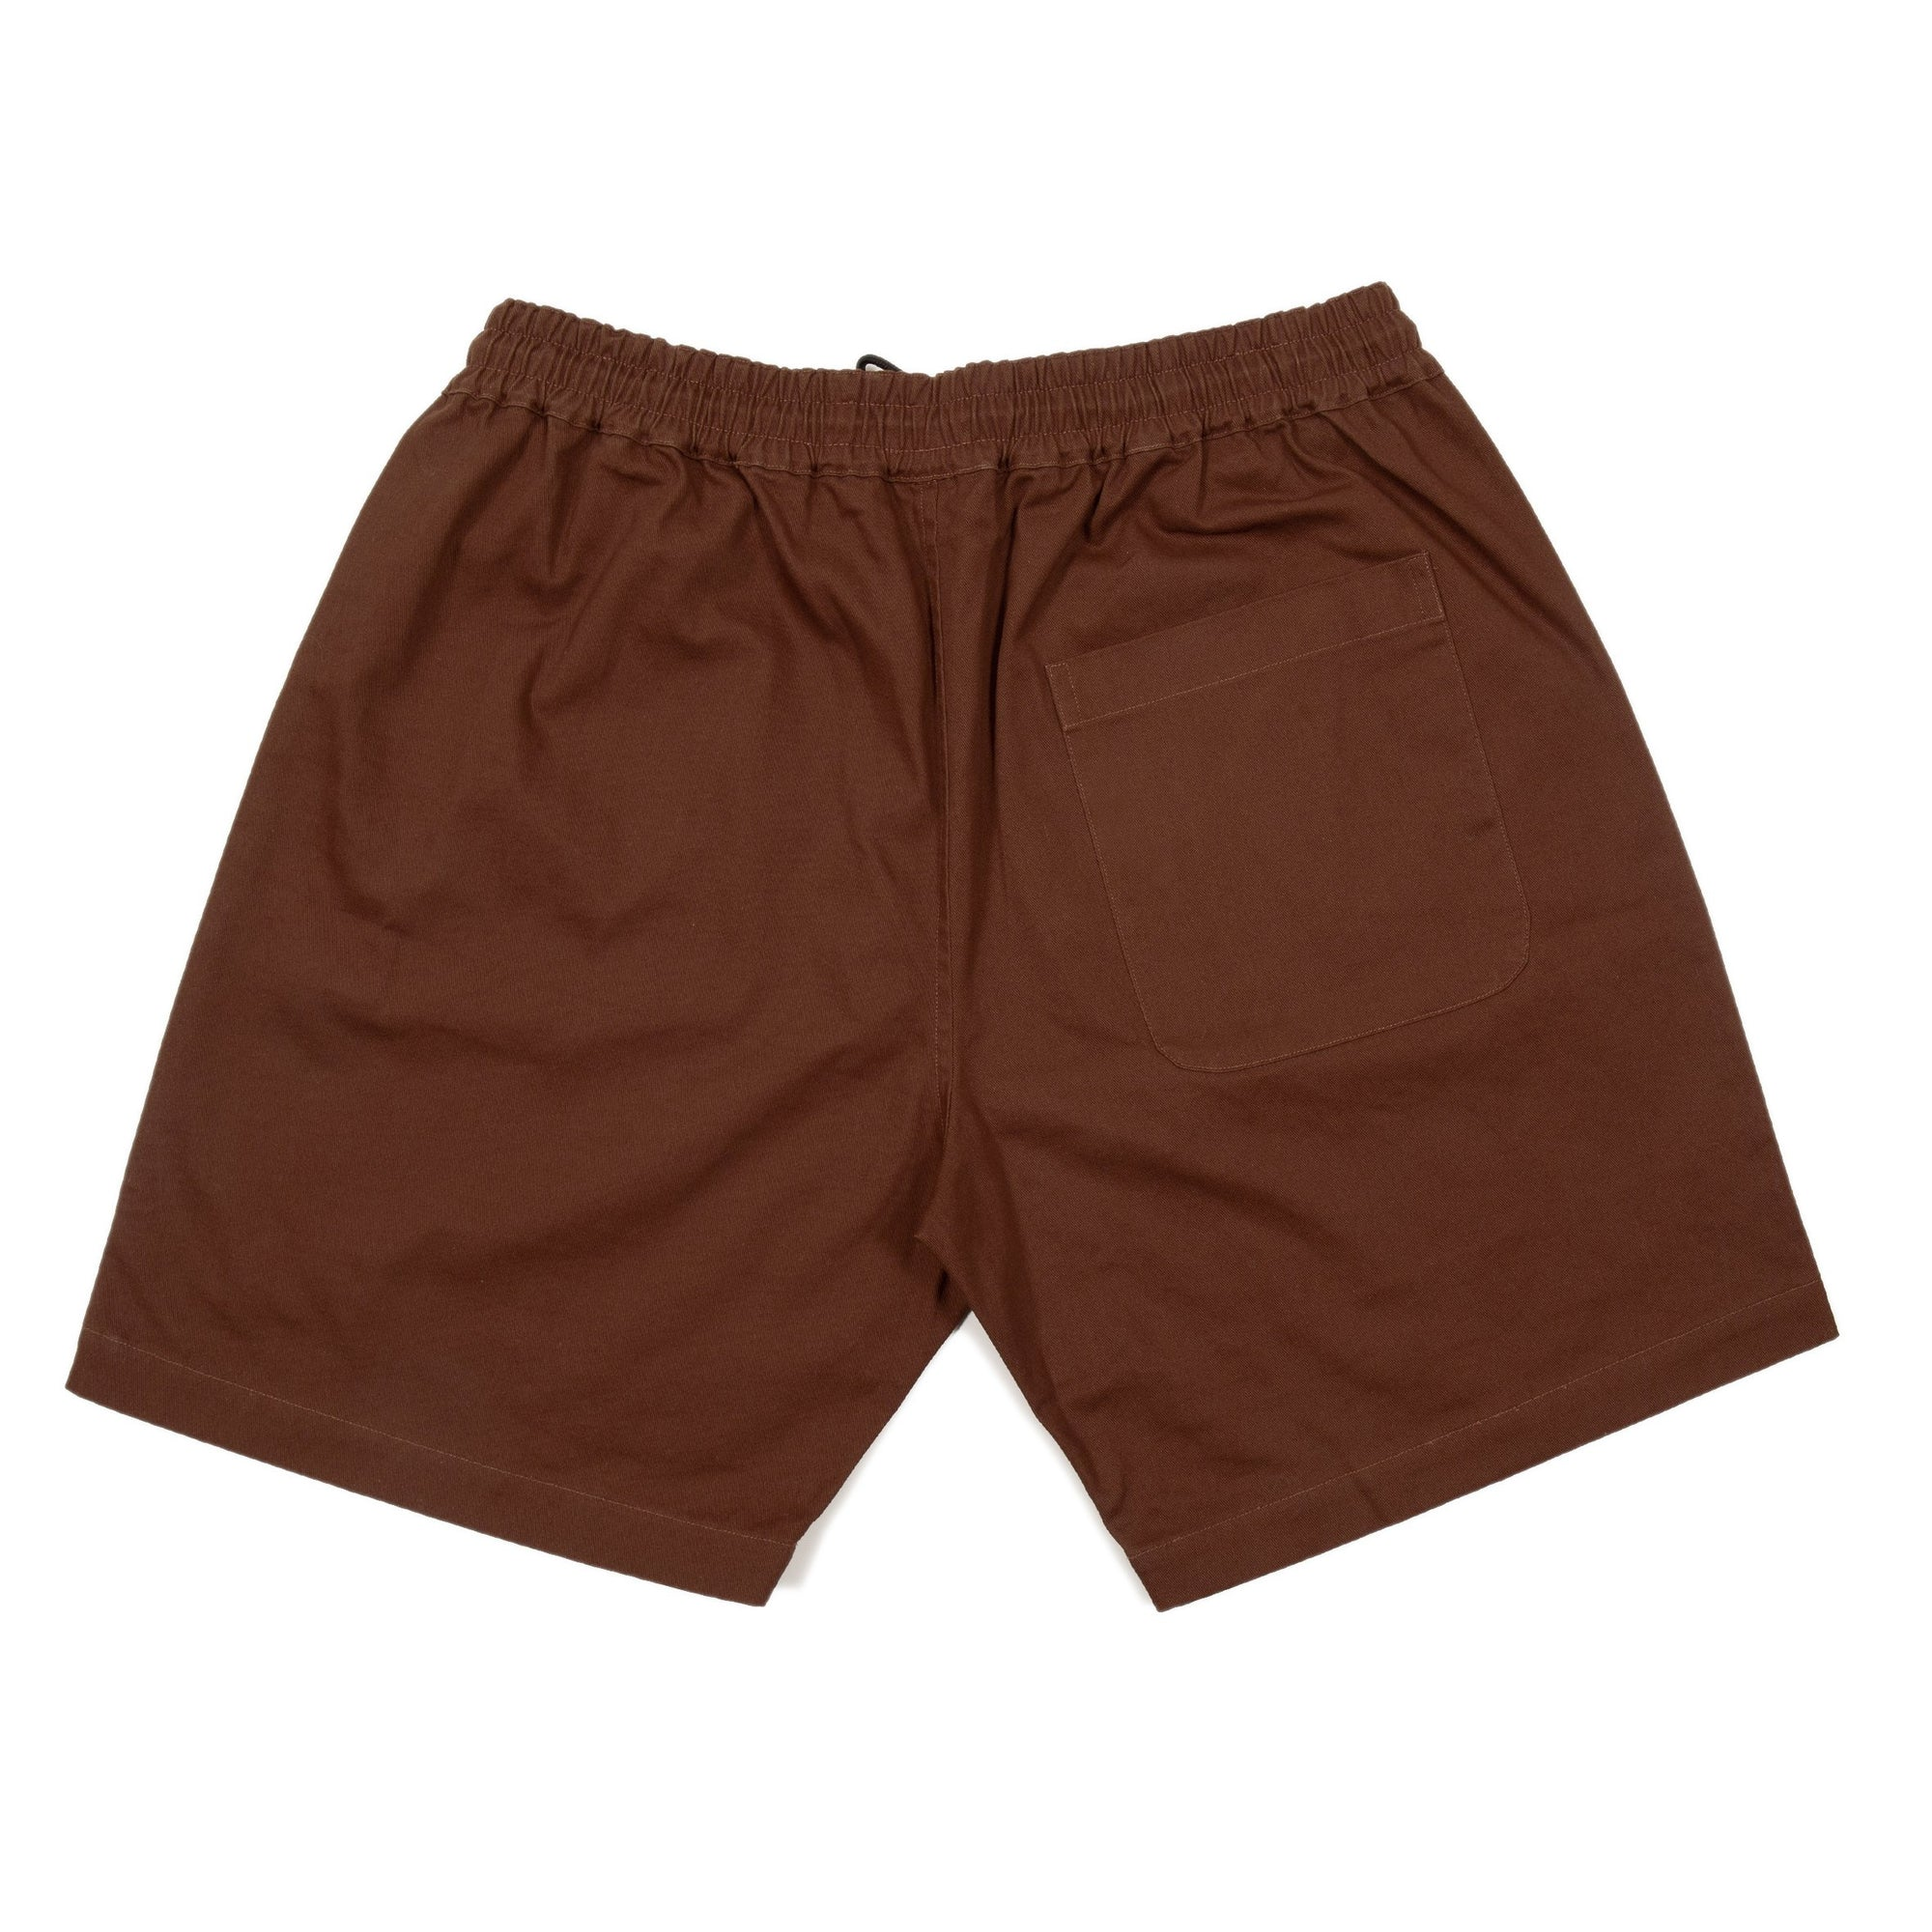 Passport Workers Shorts Product Photo #2